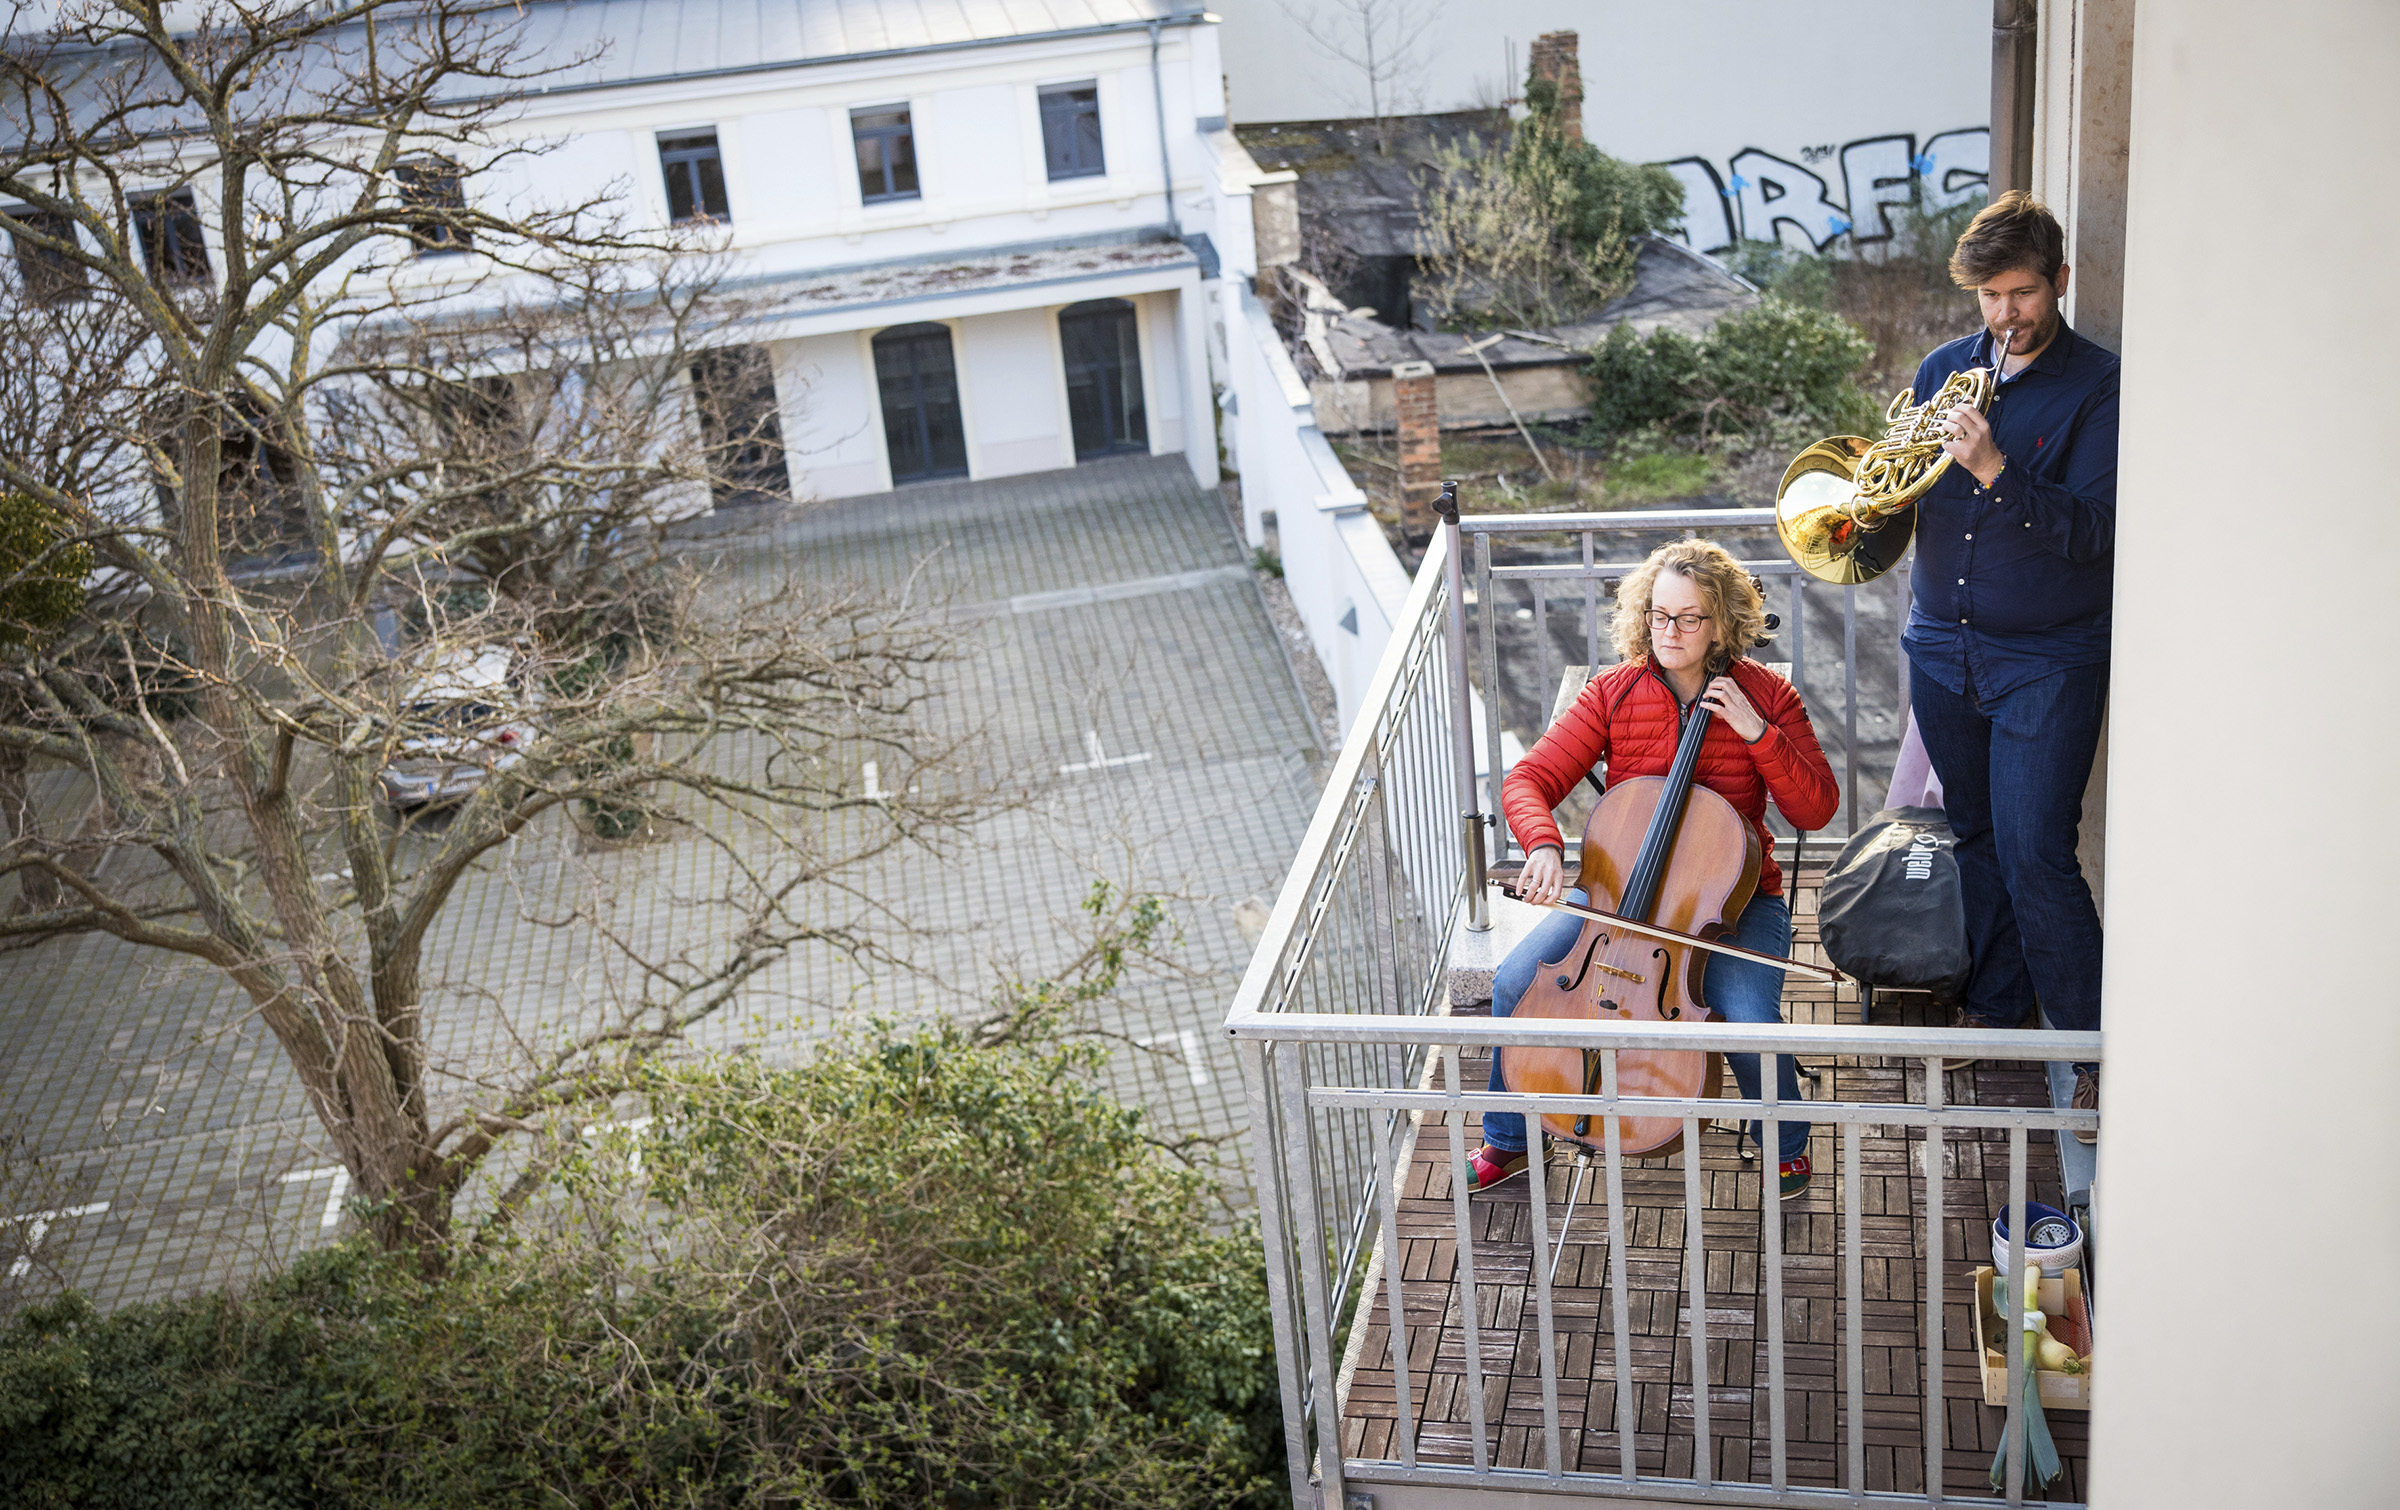 The musical couple Karoline Strobl and Zolt'n M'csai play the  Ode to Joy  with cello and horn on their balcony in Germany.